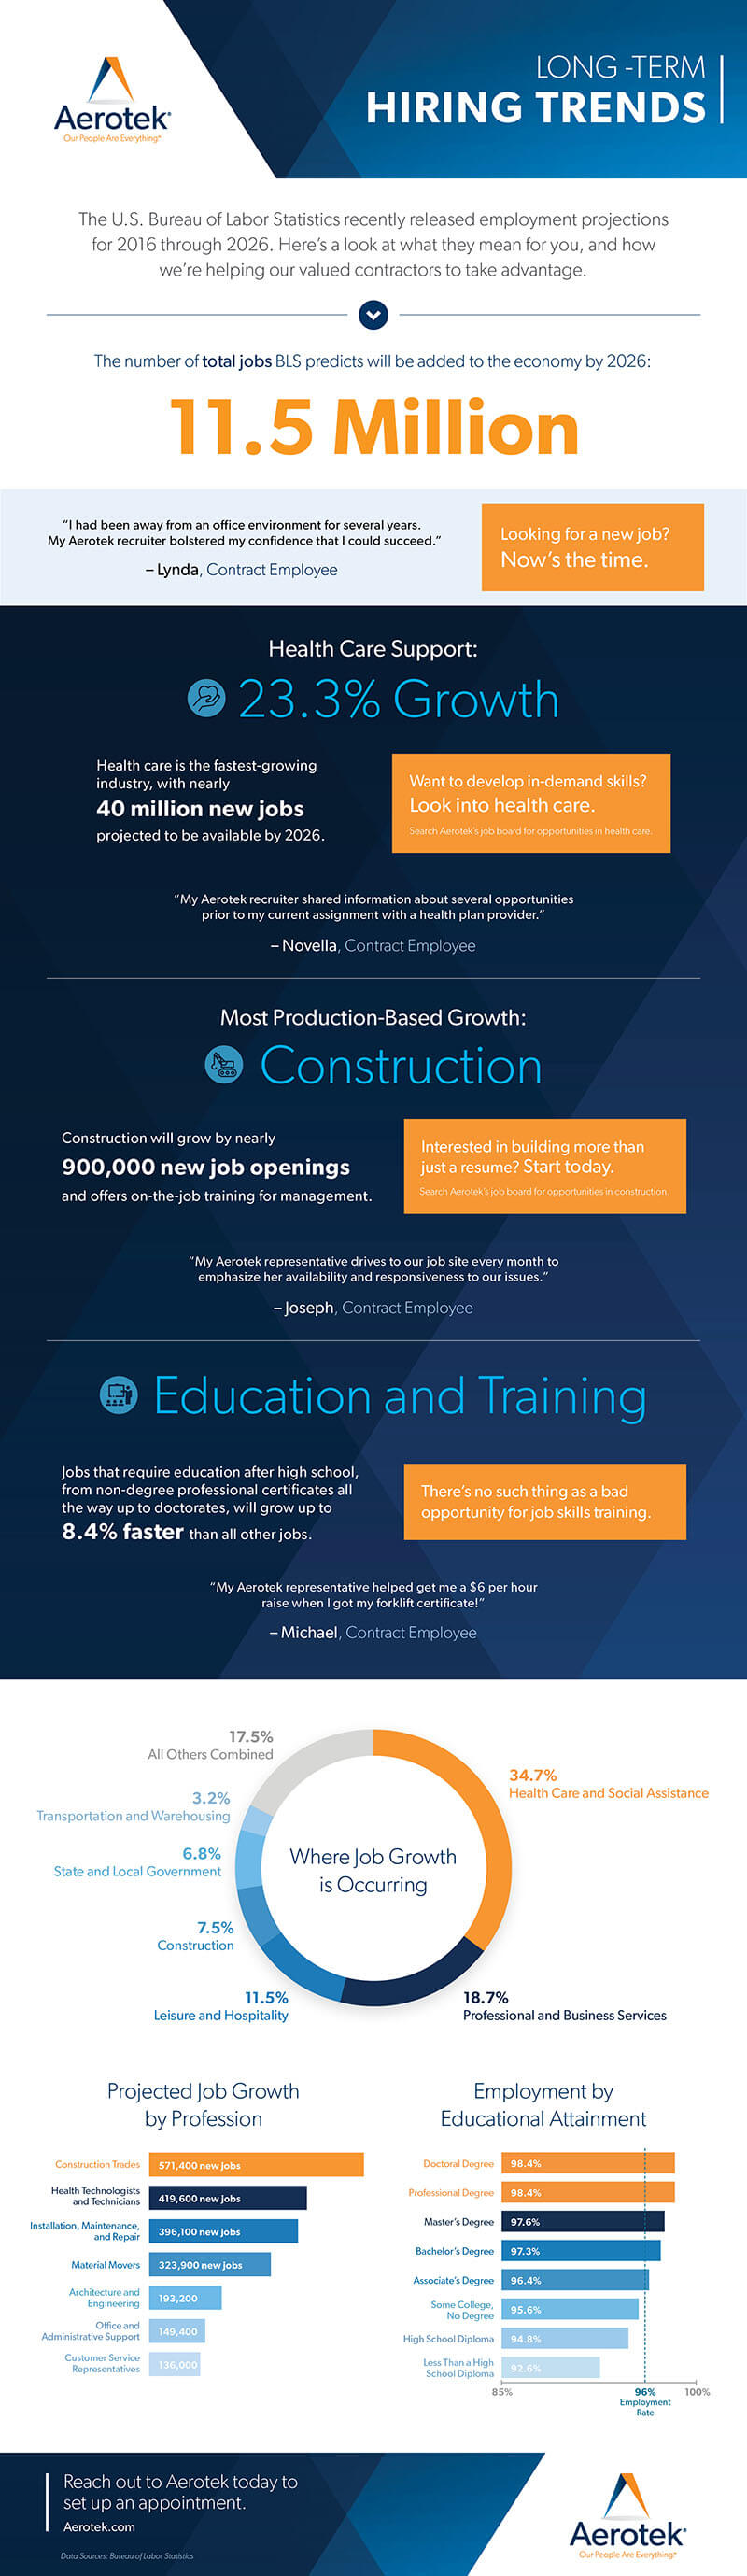 Infographic showing how Aerotek is positioned to help contractors take advantage of employment projections for 2016 through 2026.